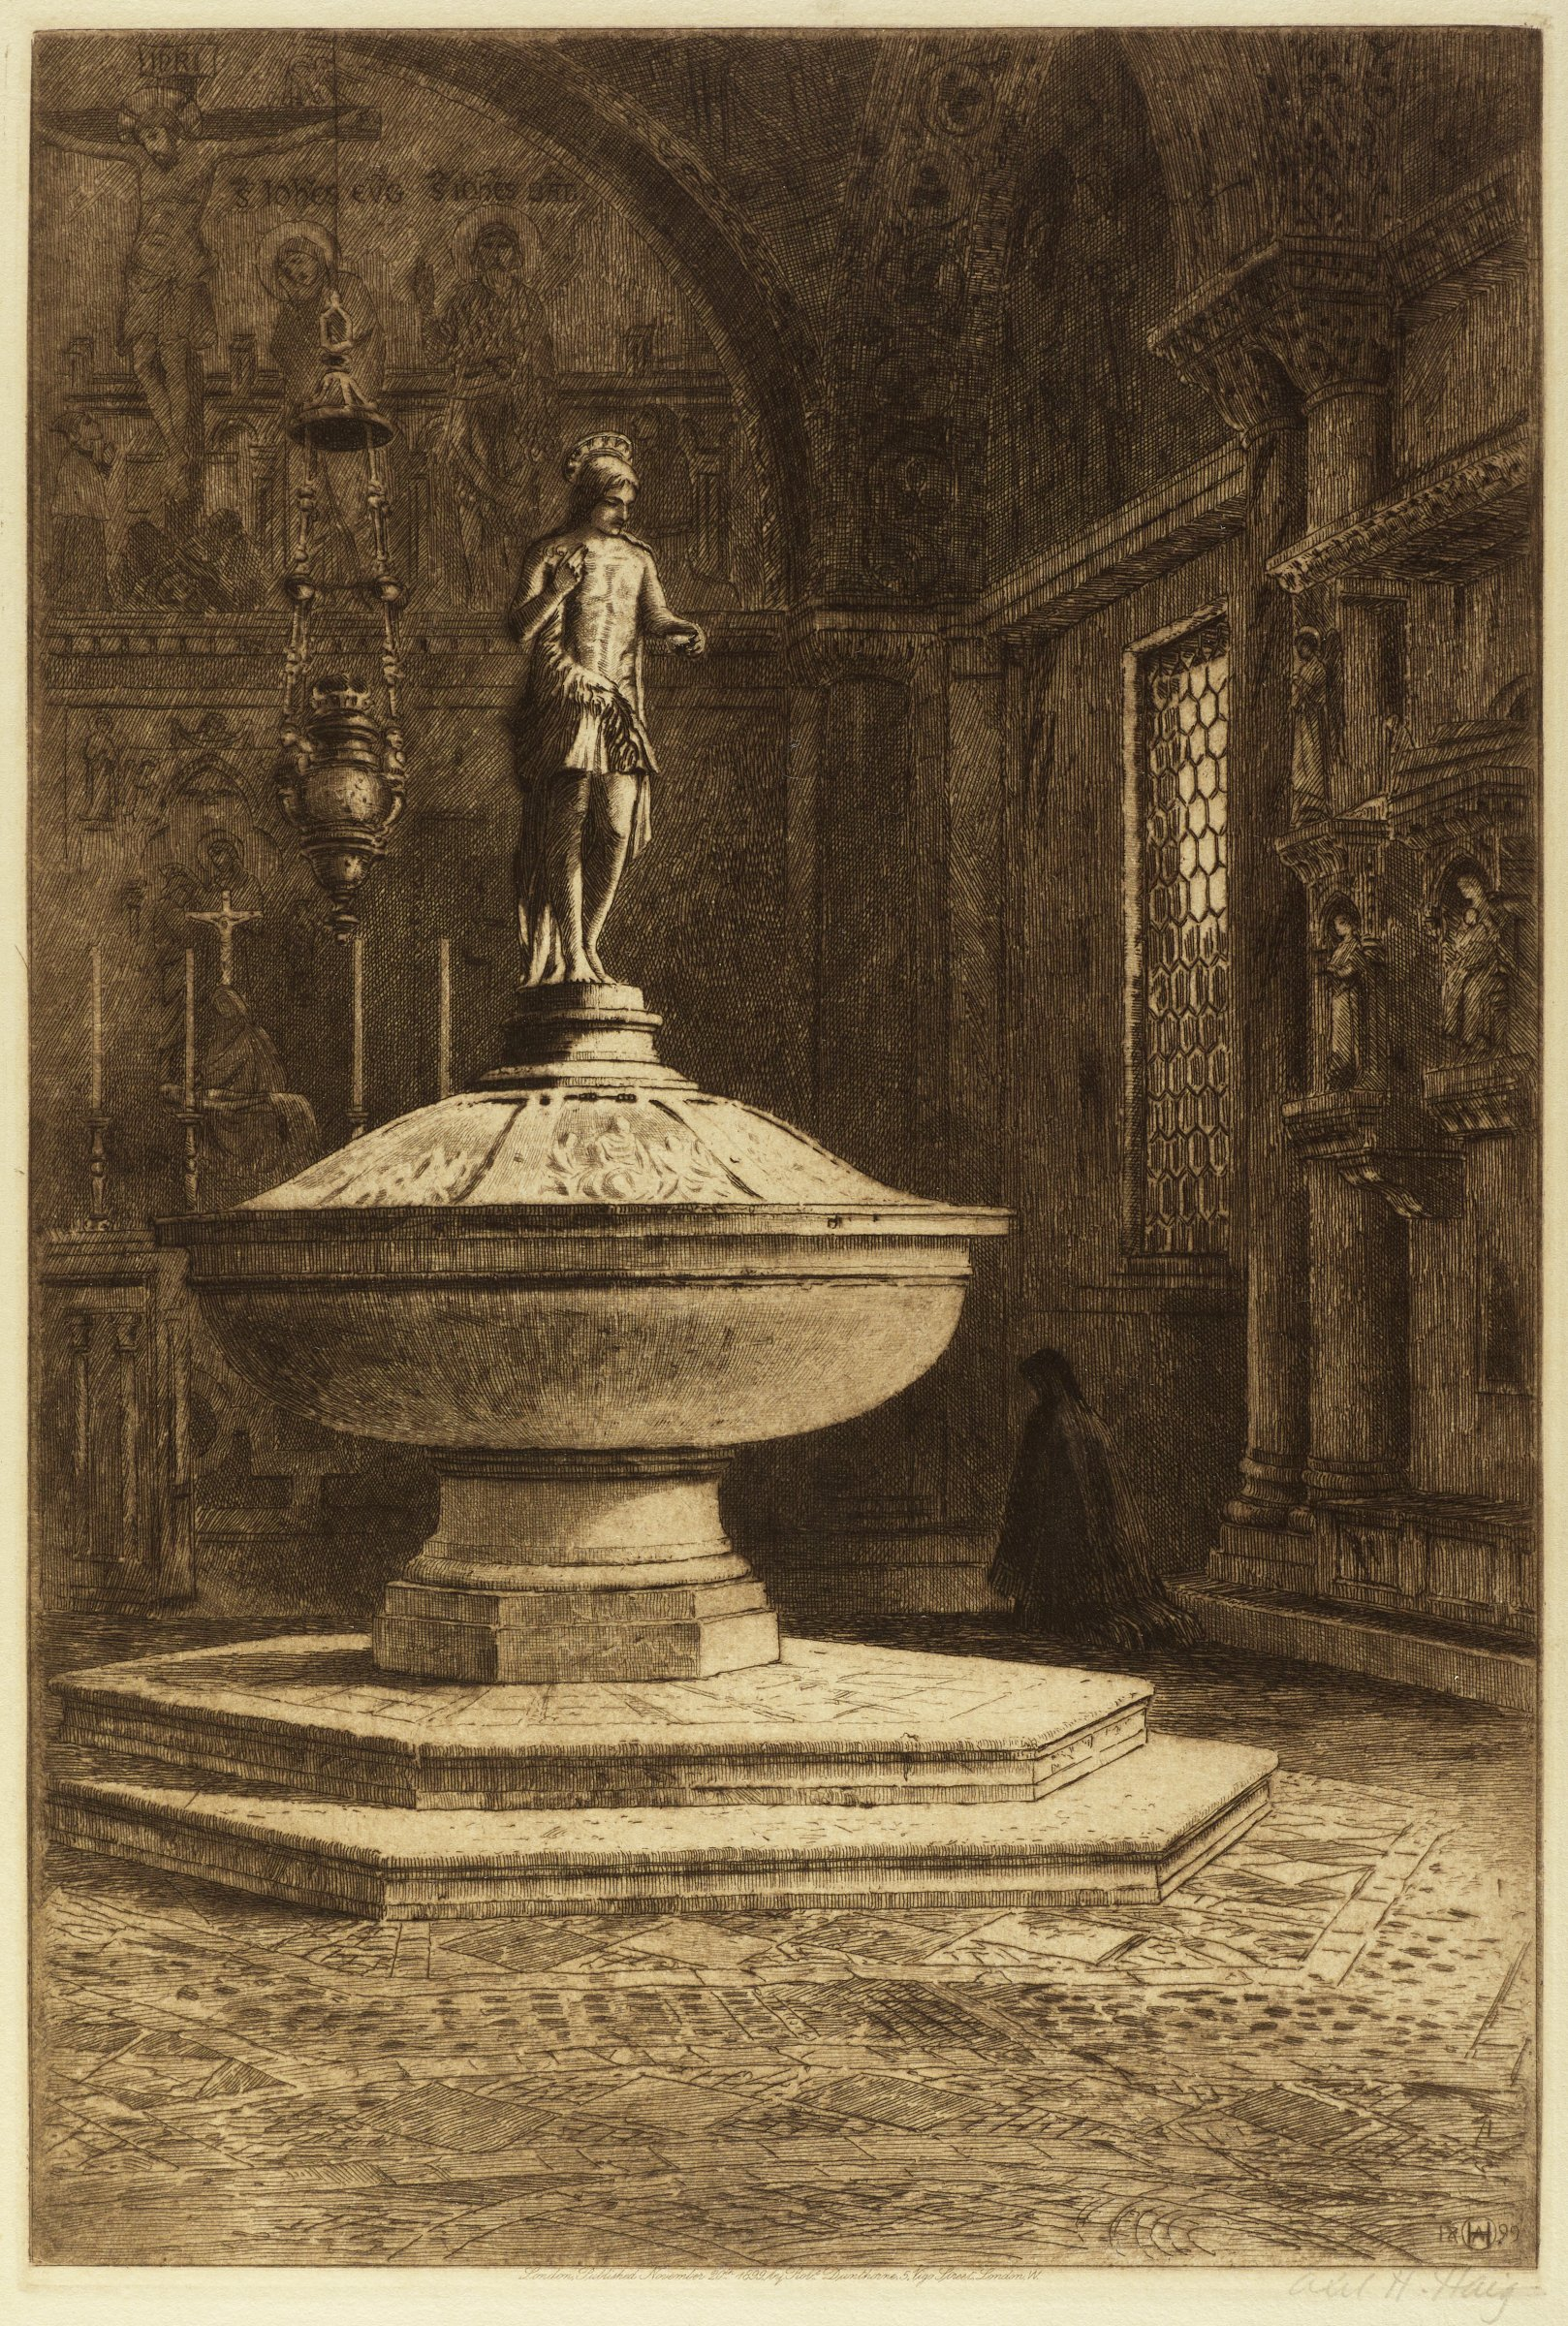 A large baptistry sits off center in the composition on a two stepped pedestal. It is topped by a sculpted figure of Jesus.  A figure kneels in prayer in the shadowy background.